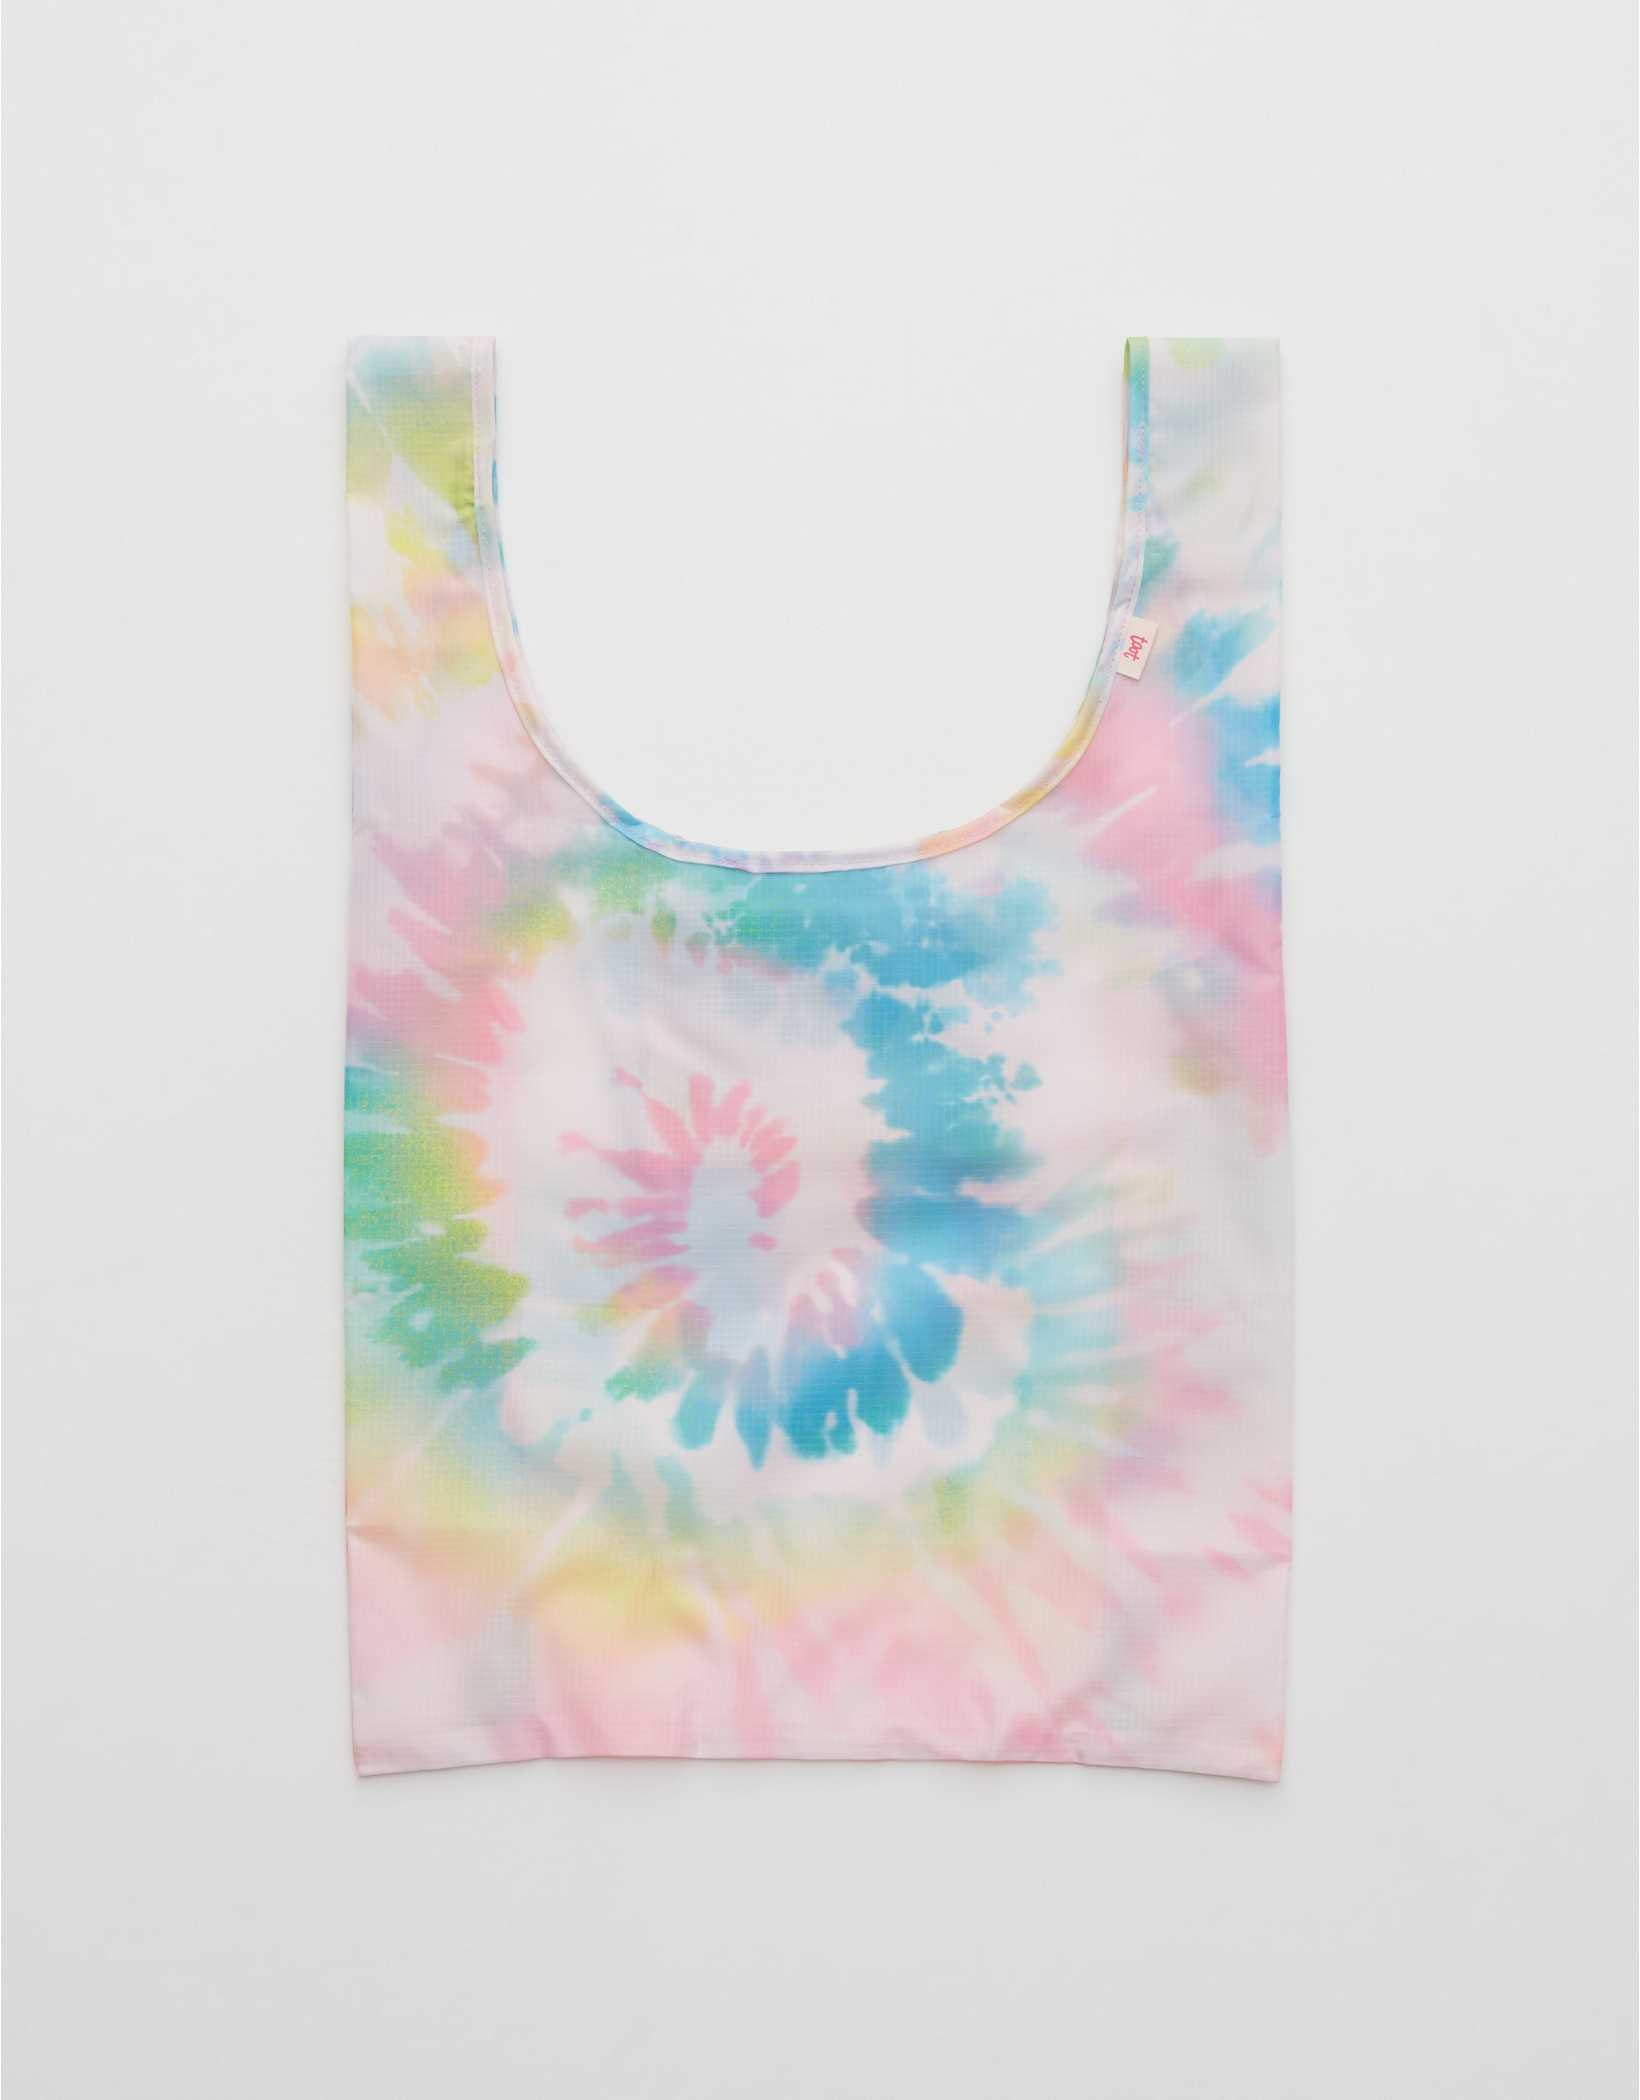 Talking Out Of Turn Twist & Shout Reusable Bag